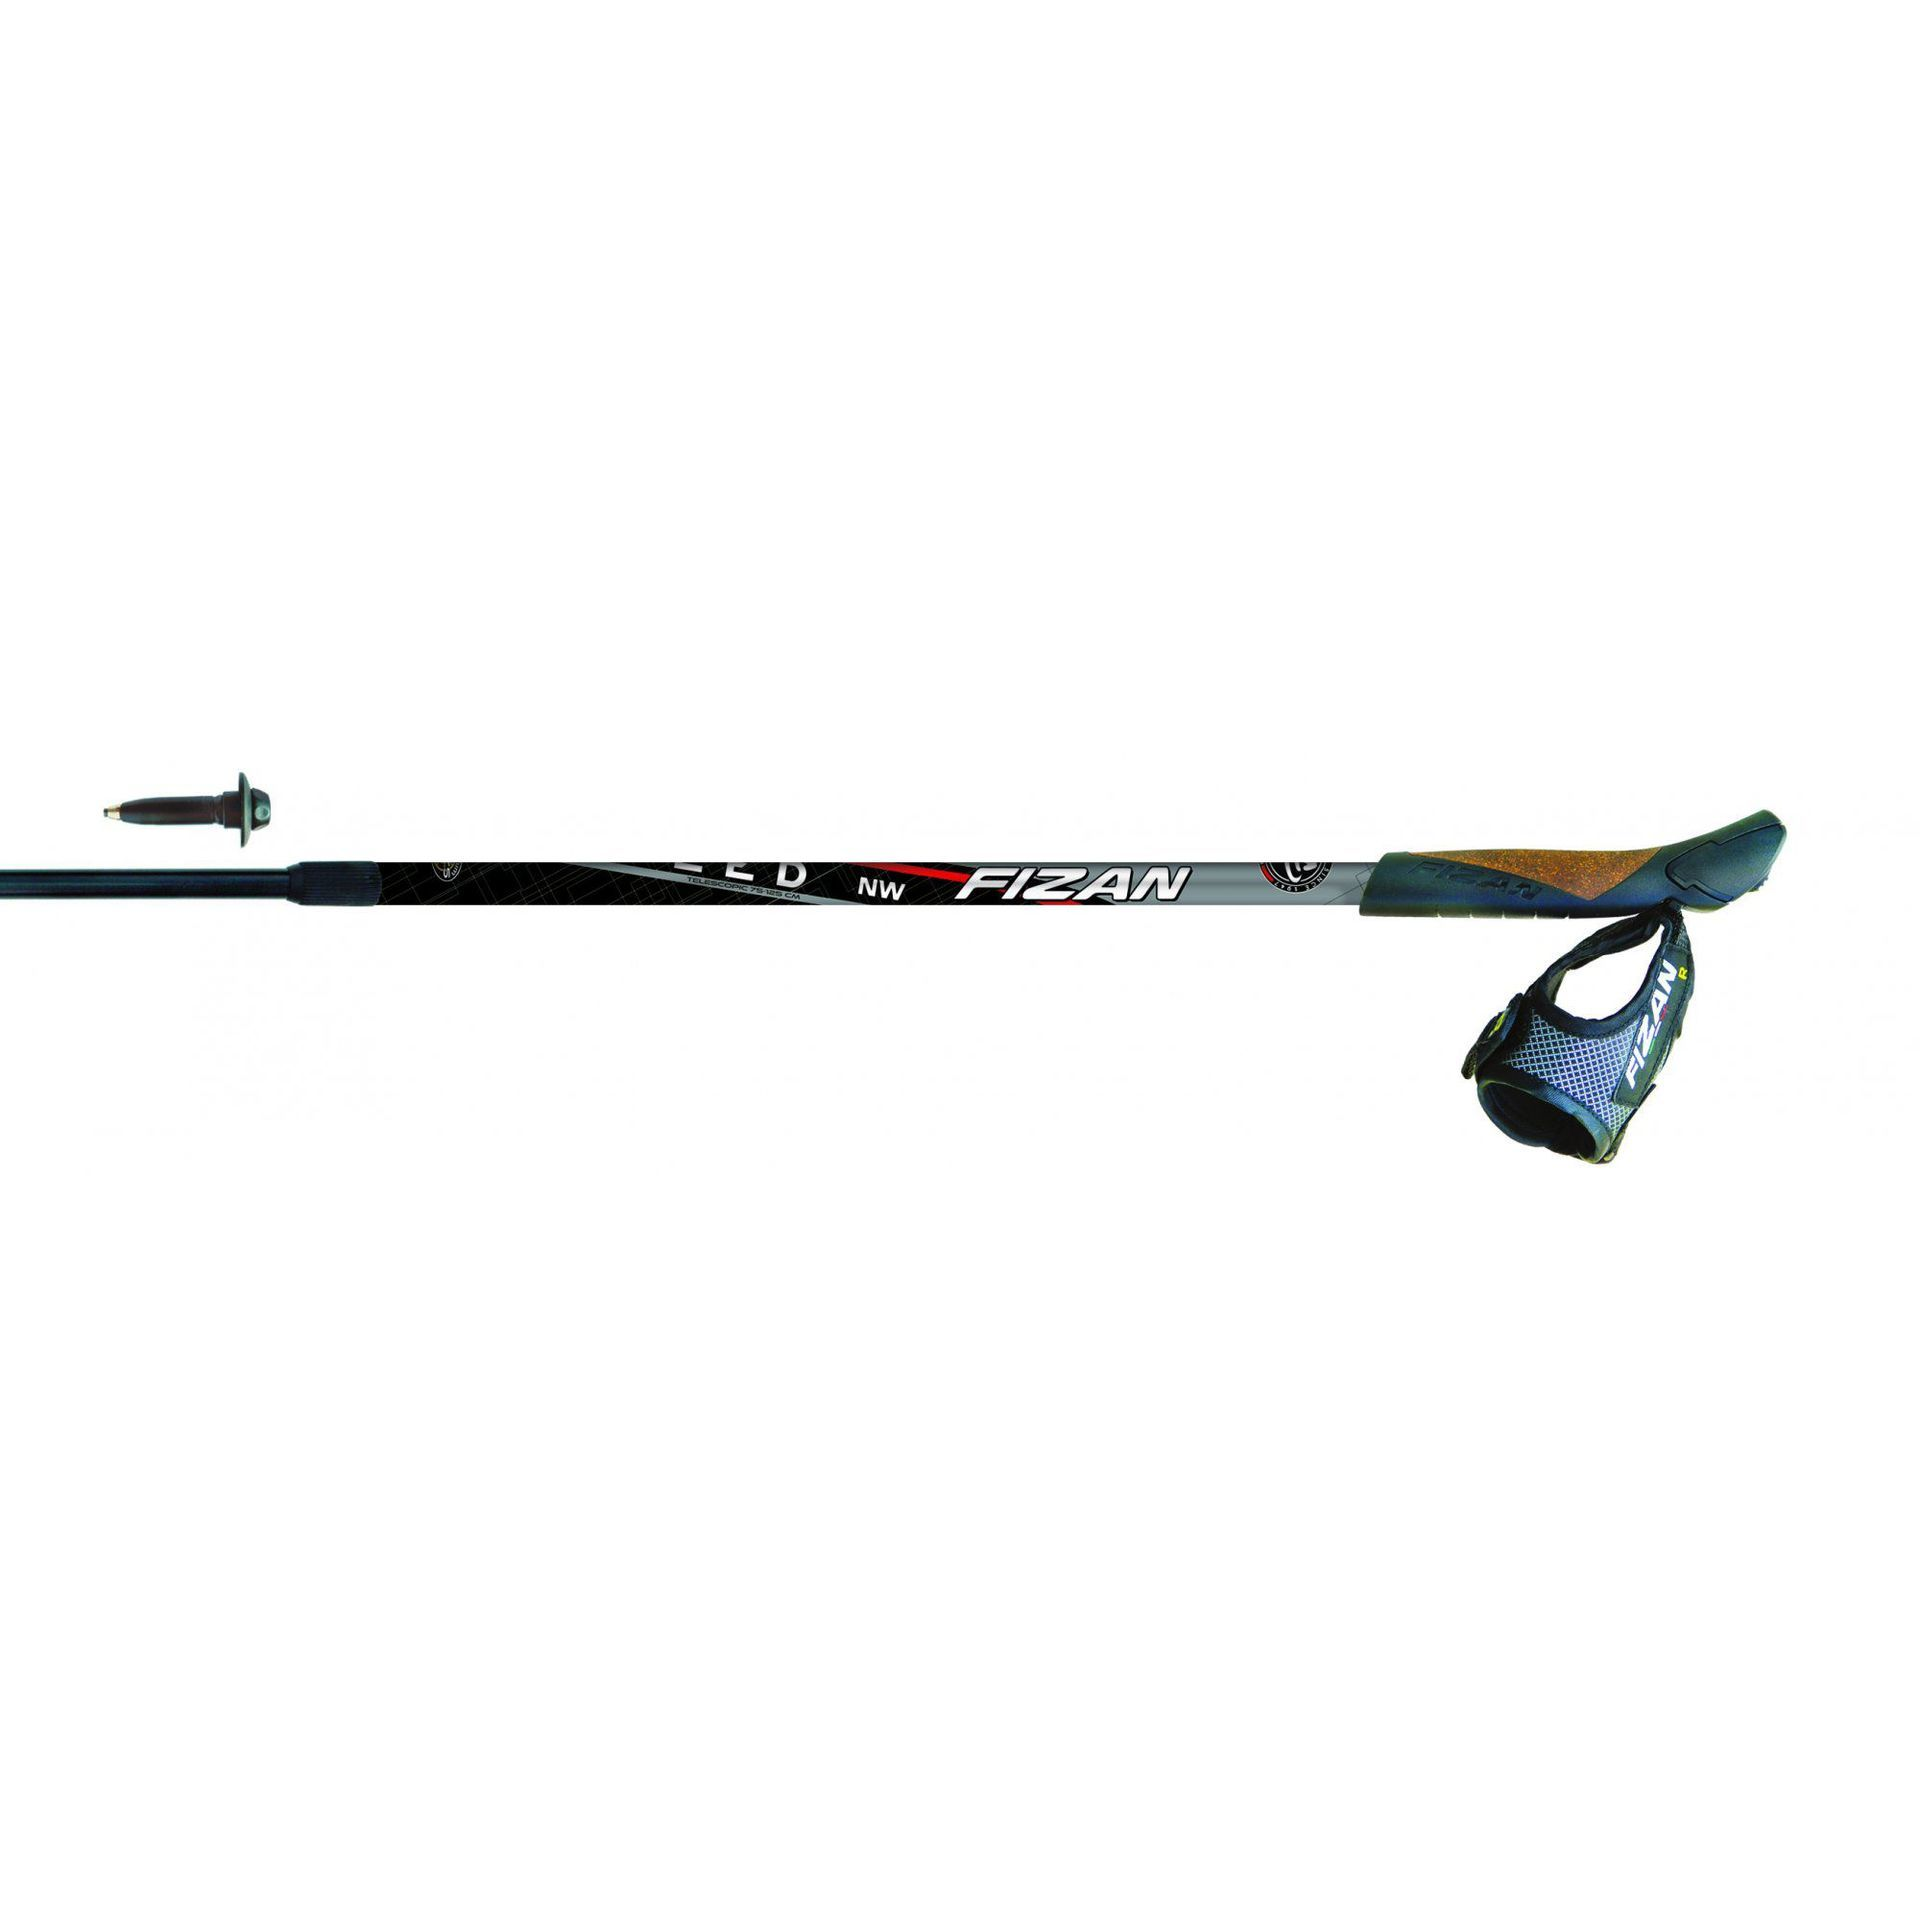 KIJE NORDIC WALKING FIZAN NW SPEED BLACK